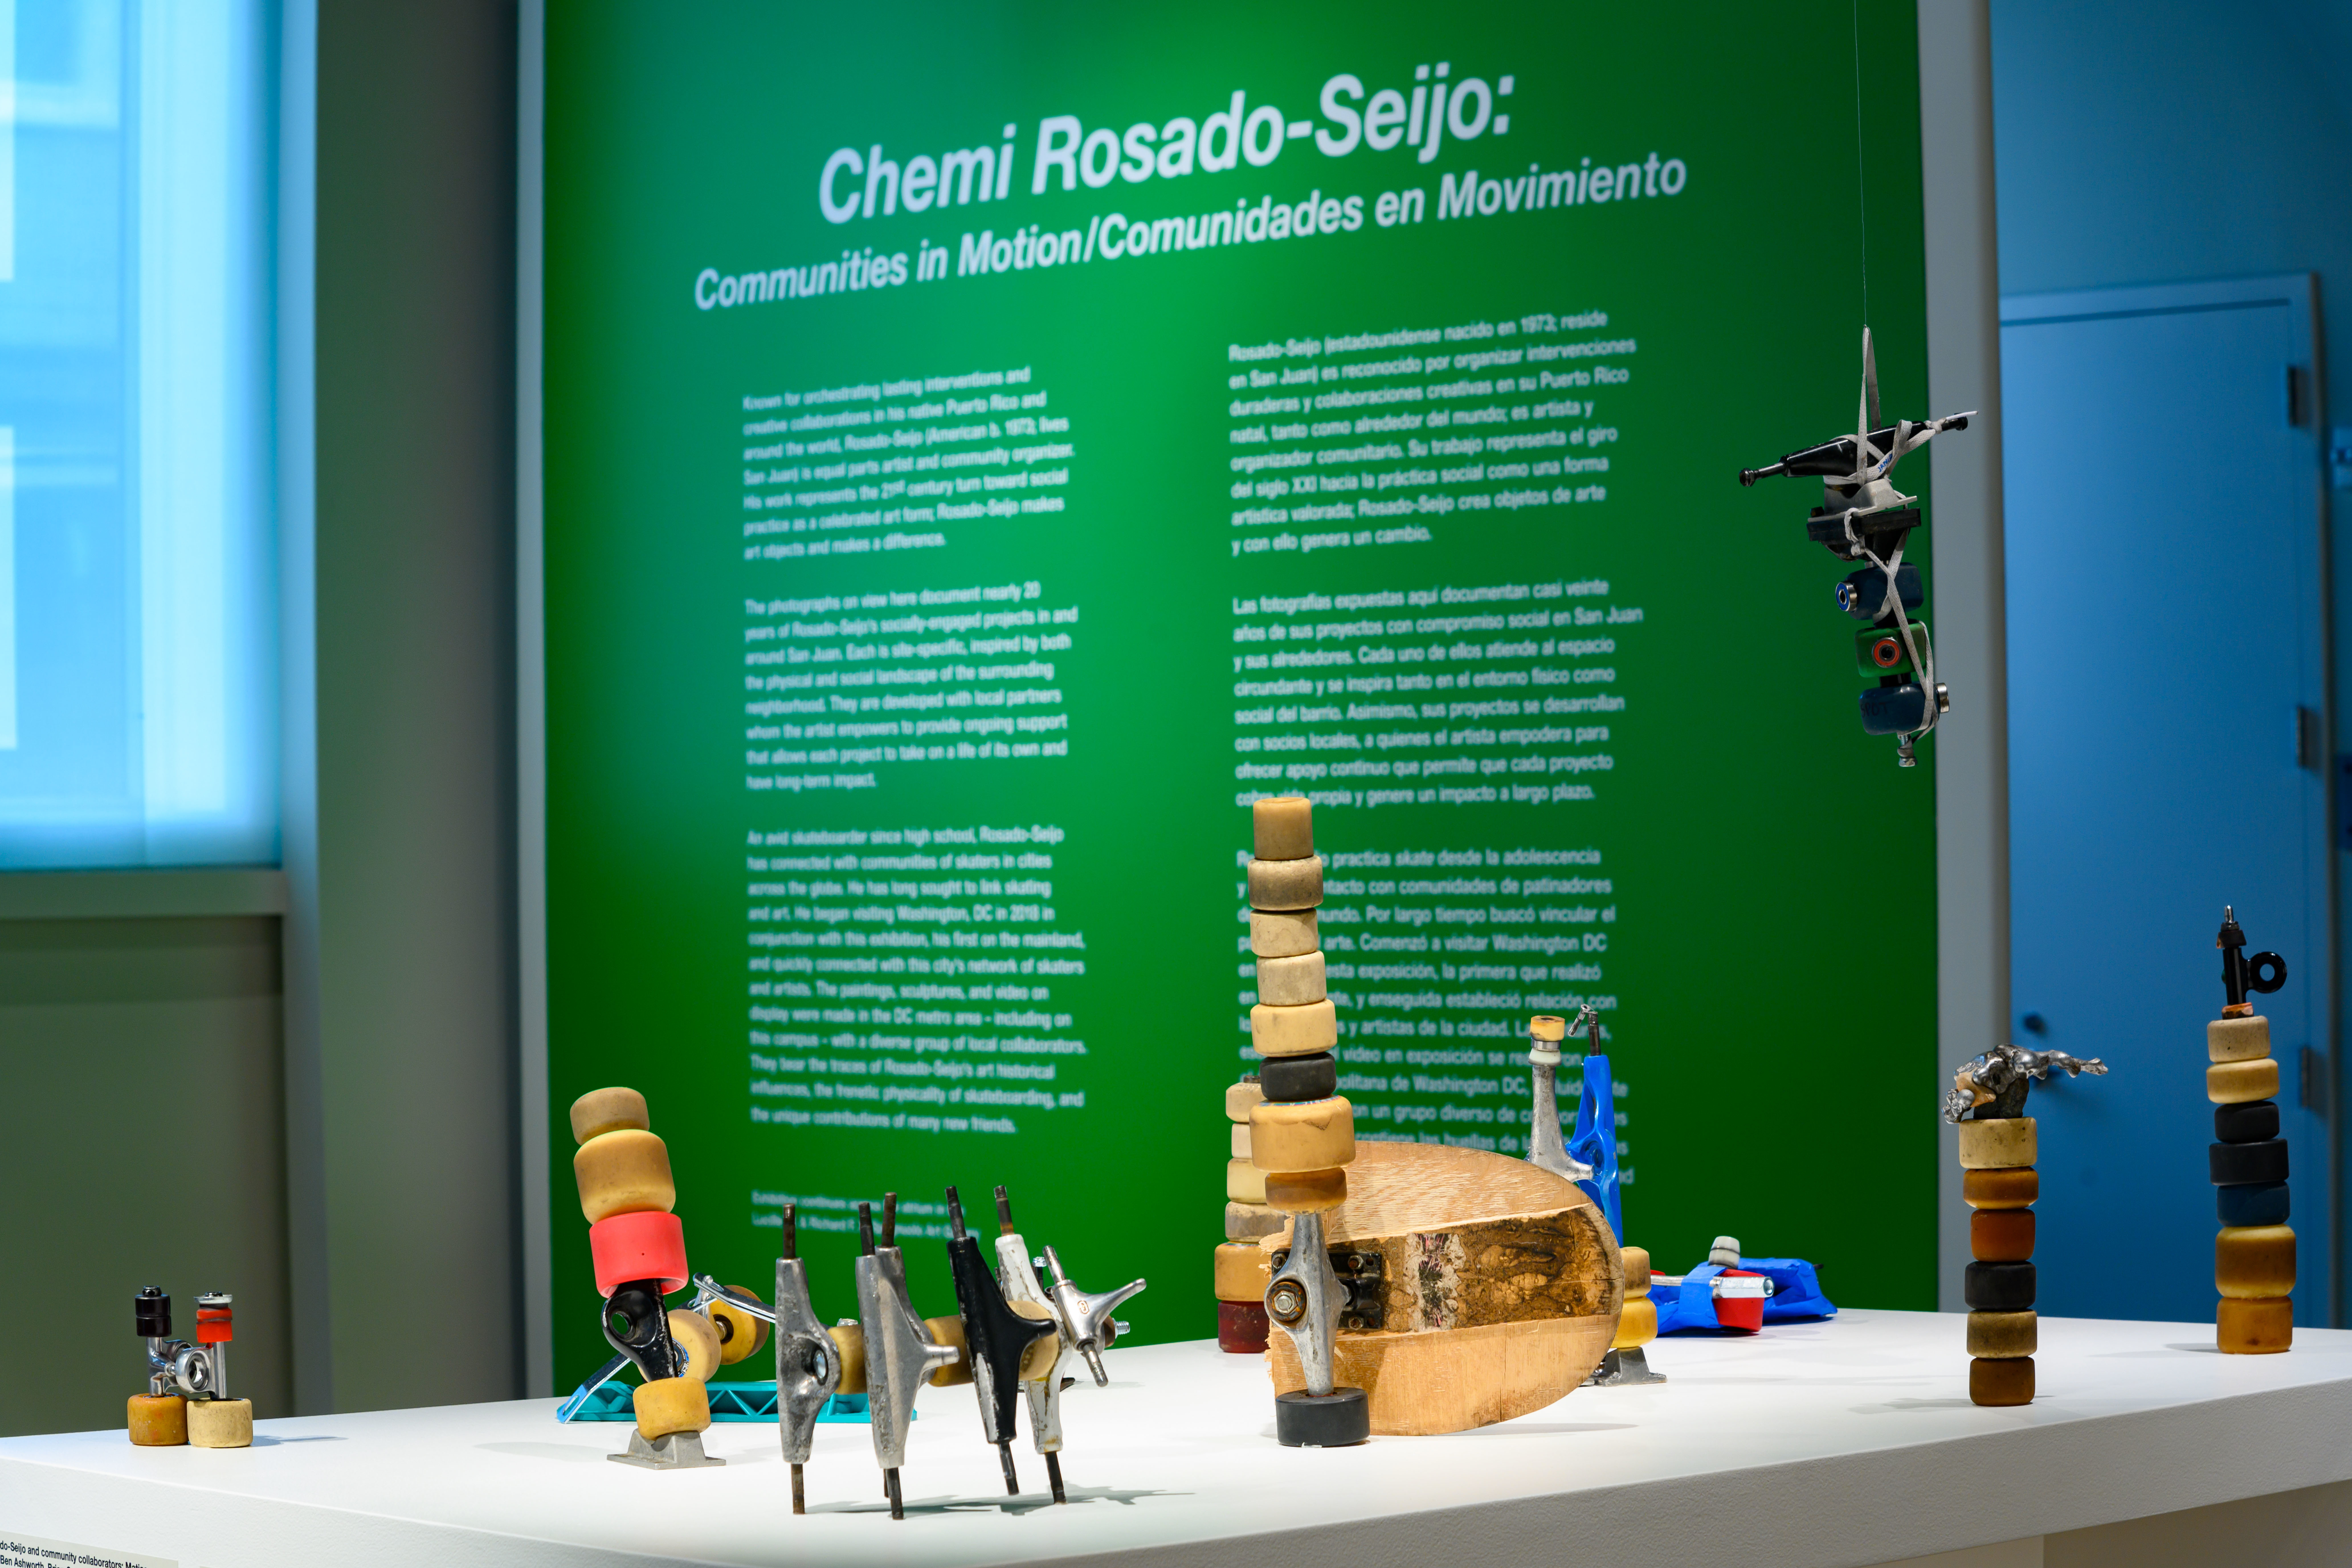 Chemi Rosado-Seijo and student collaborative sculptures with vinyl exhibition text in the background